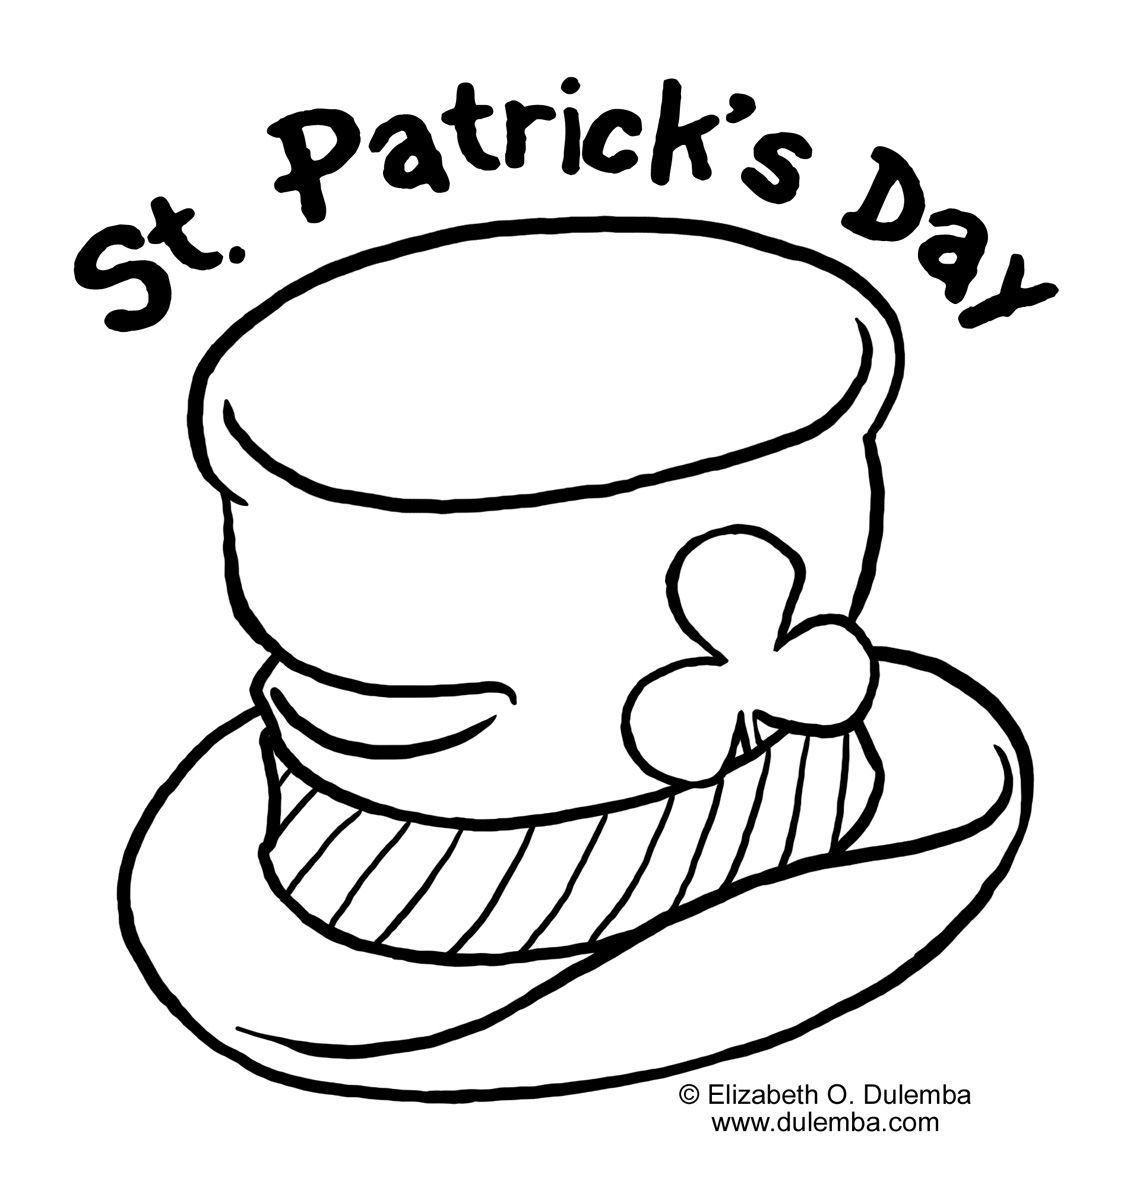 st patricks day coloring page | crafts | Pinterest | More Saints ...